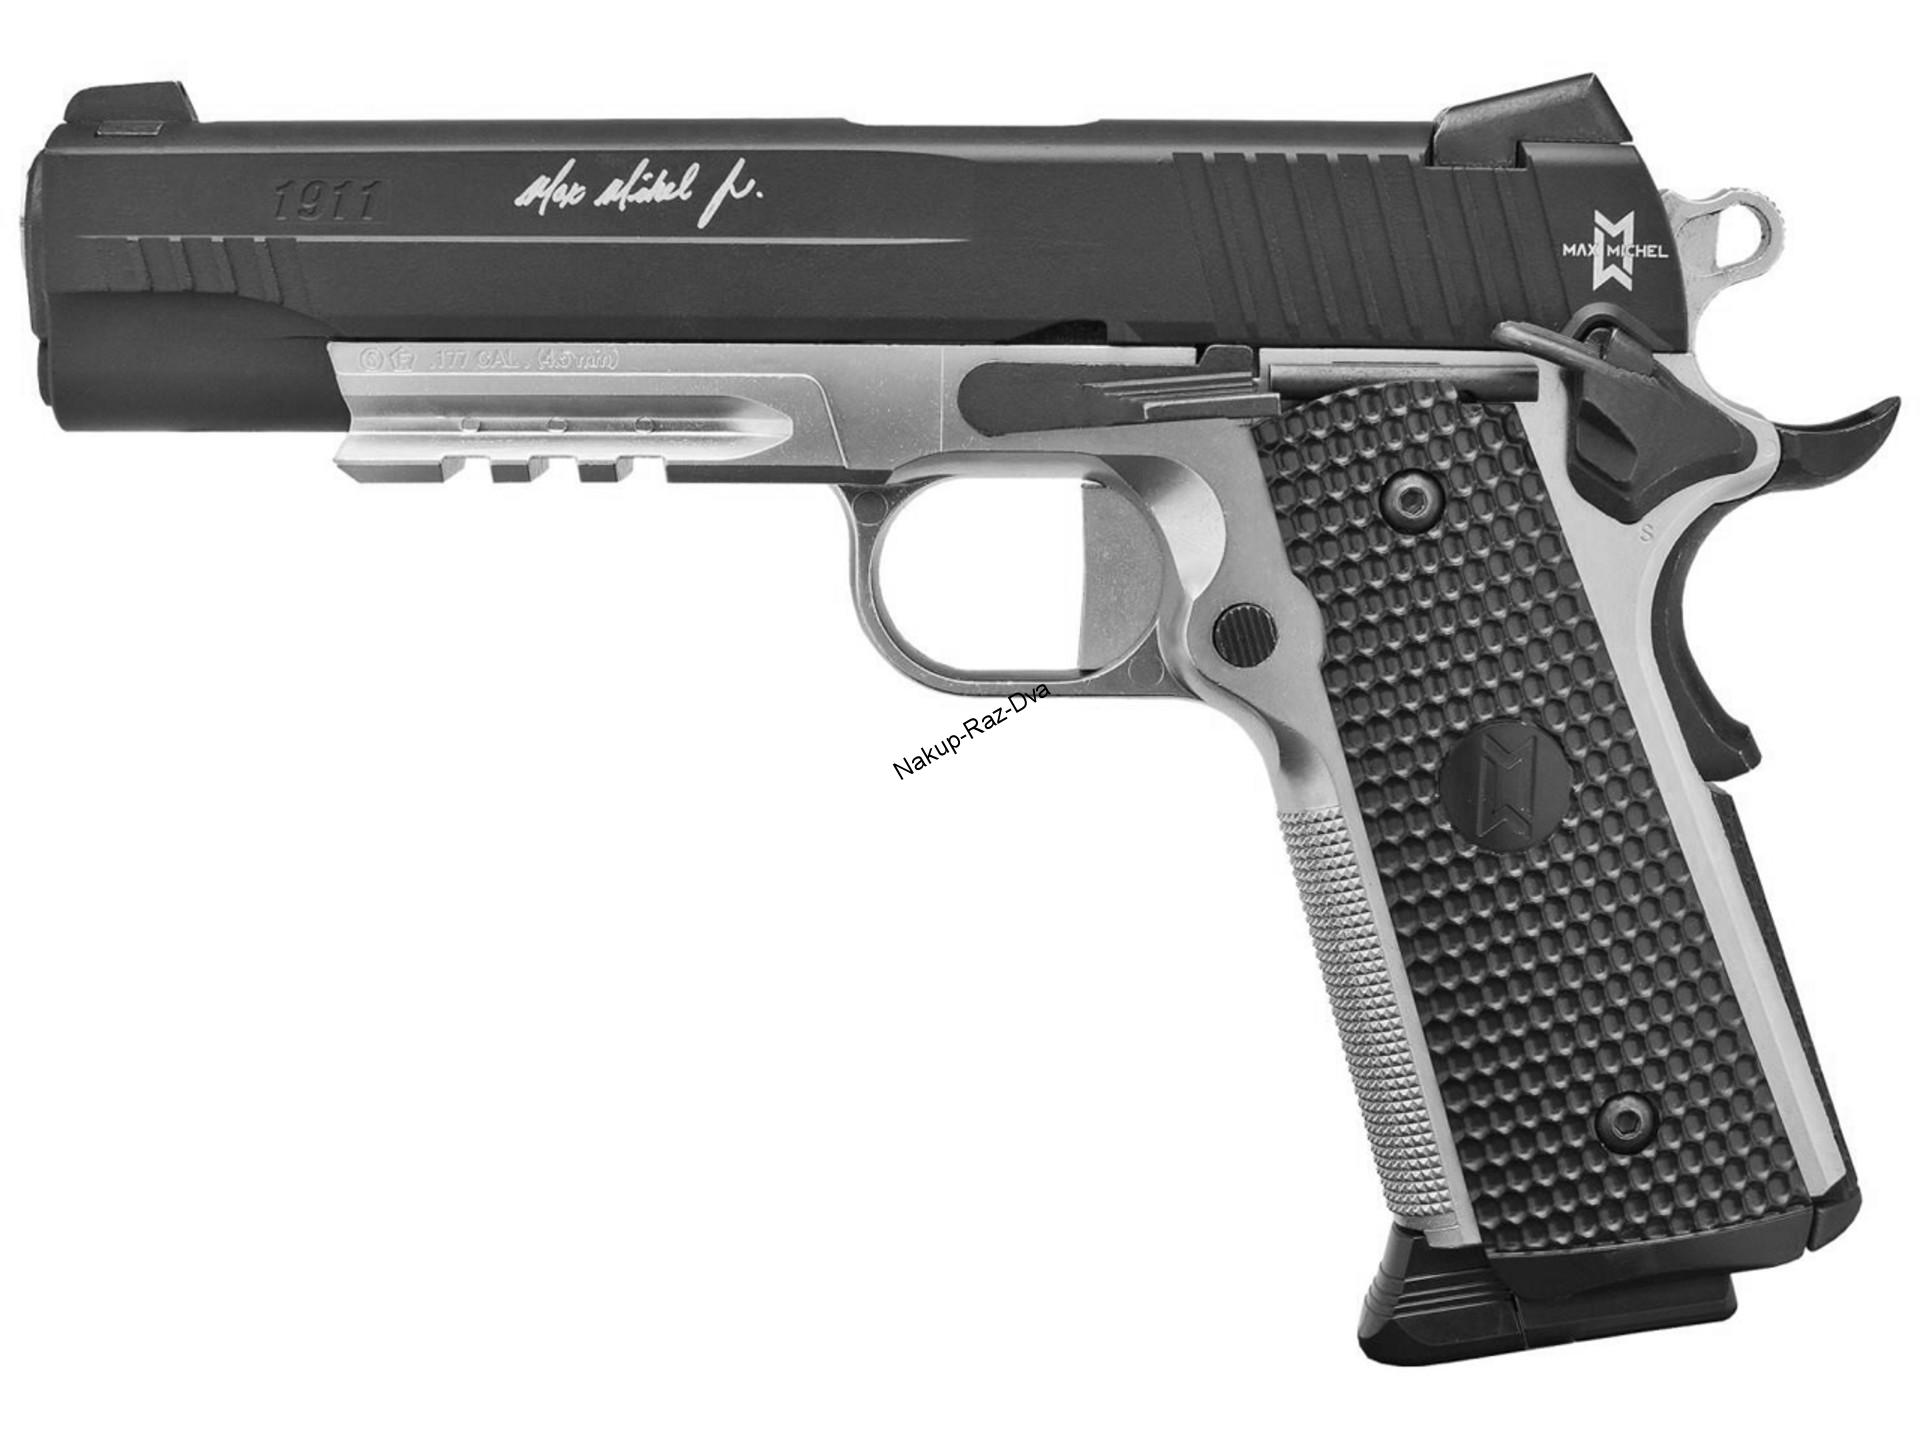 Vzduchová pistole Sig Sauer 911 Max Michel cal.4,5mm